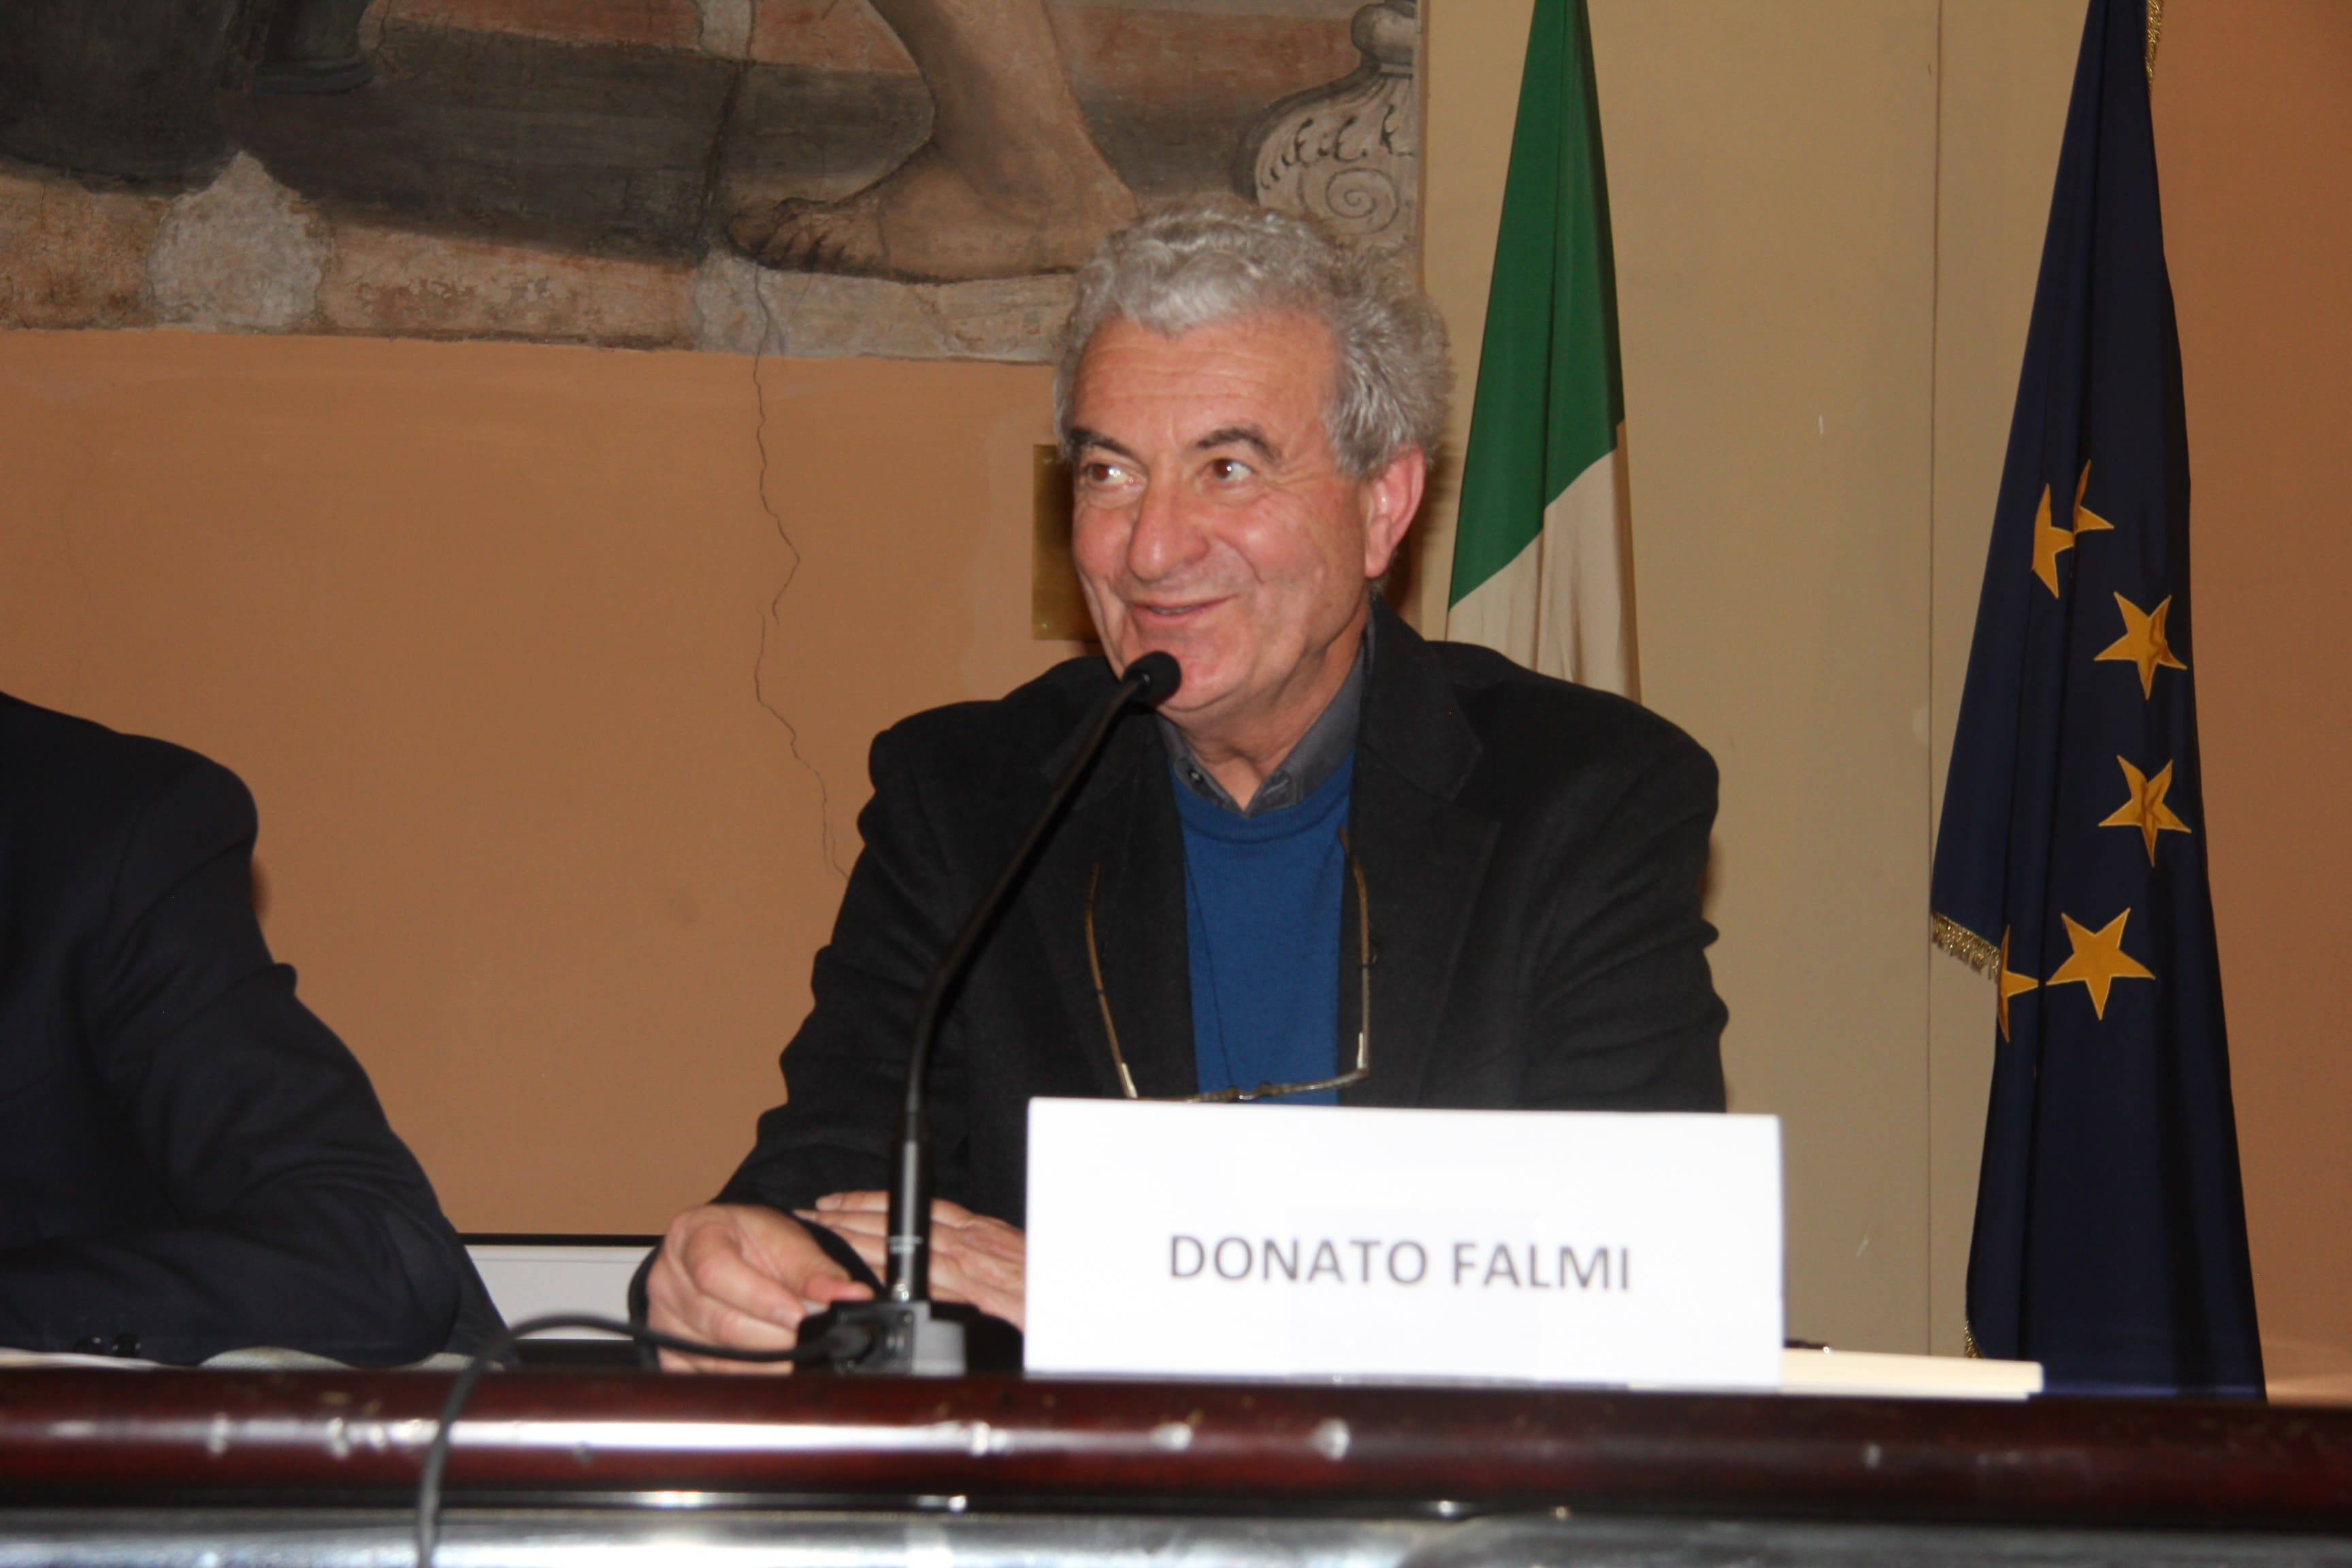 Interview avec Donato Falmi